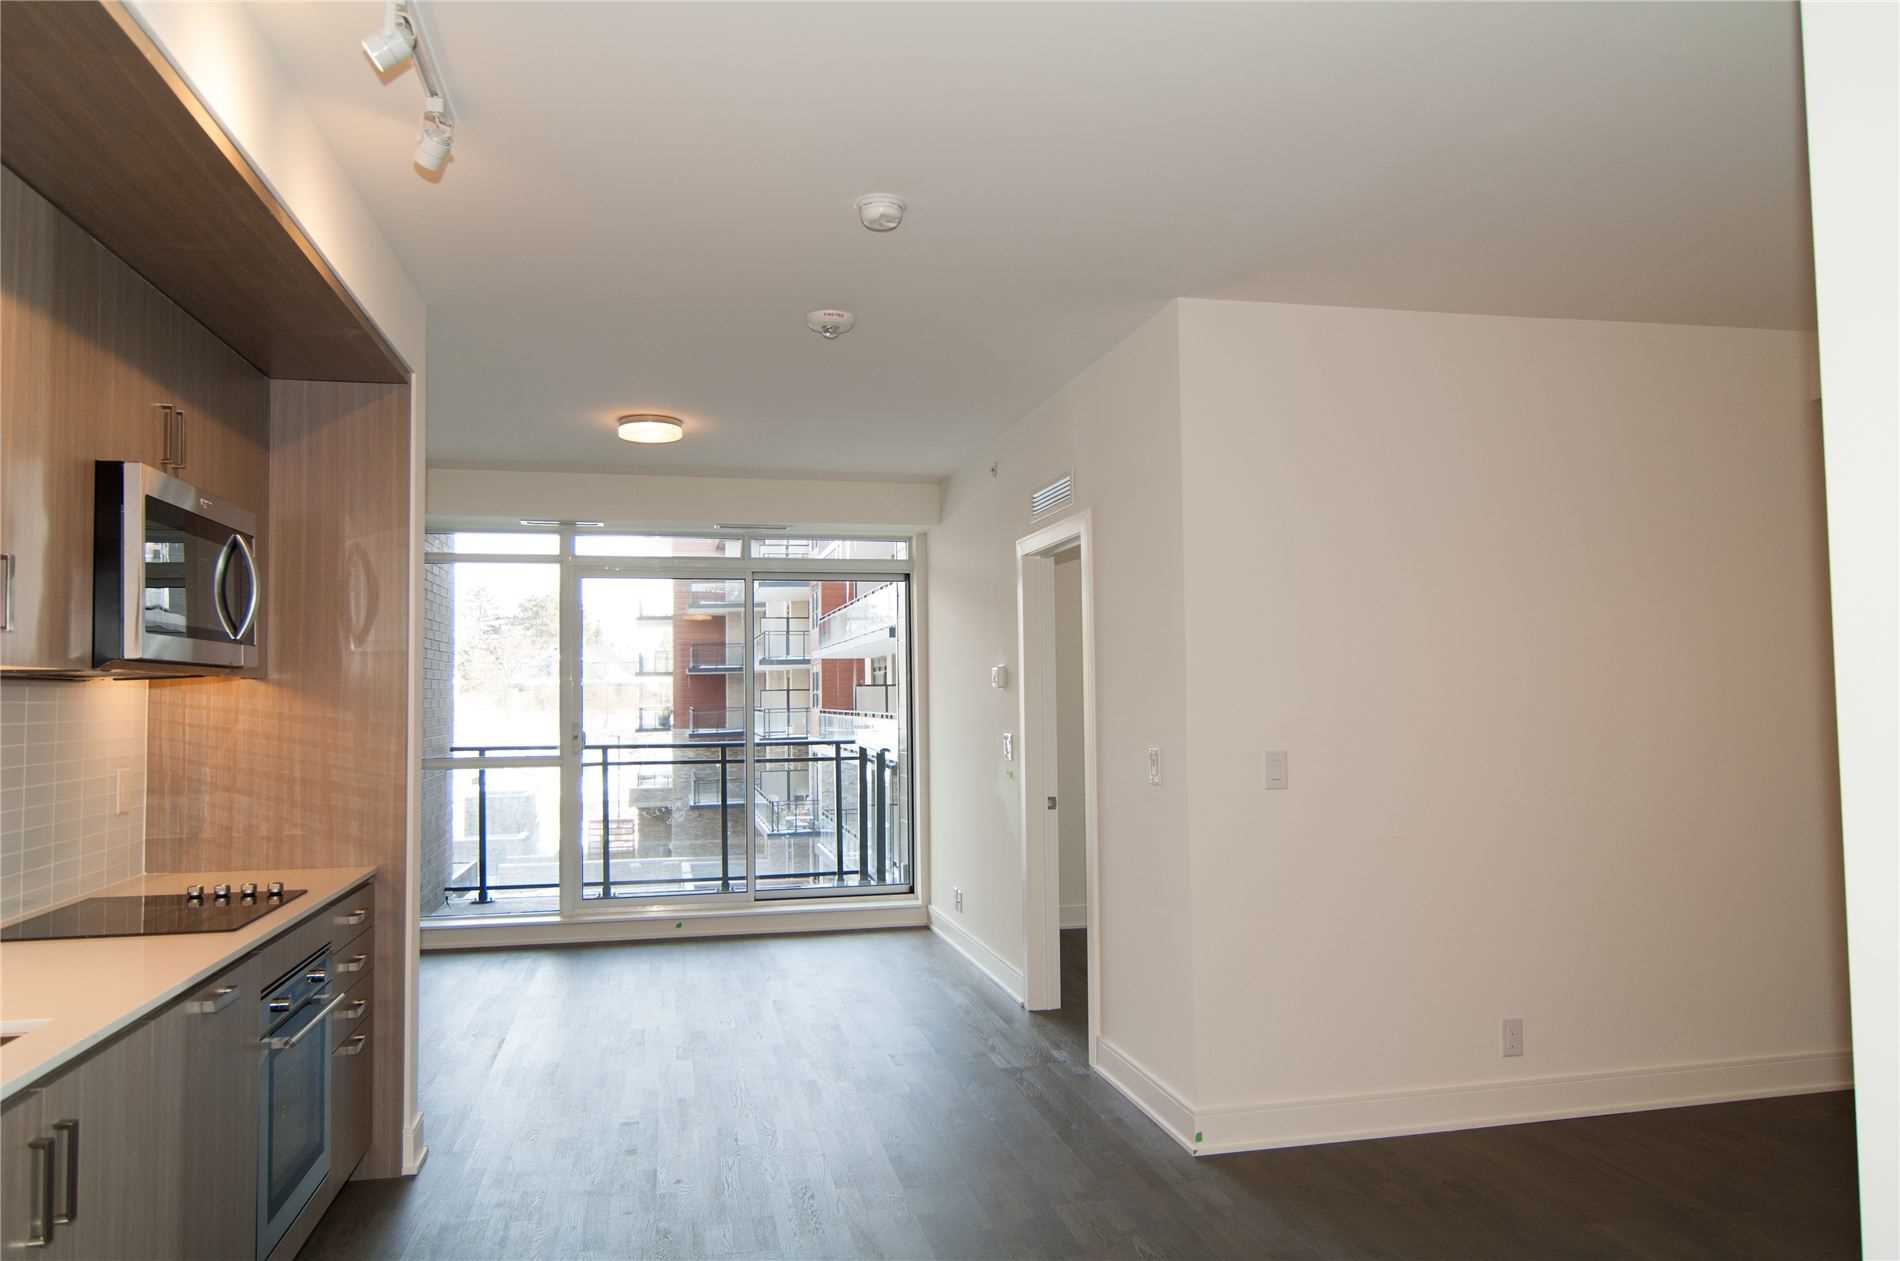 #240 - 1575 Lakeshore Rd W, Mississauga W4686551